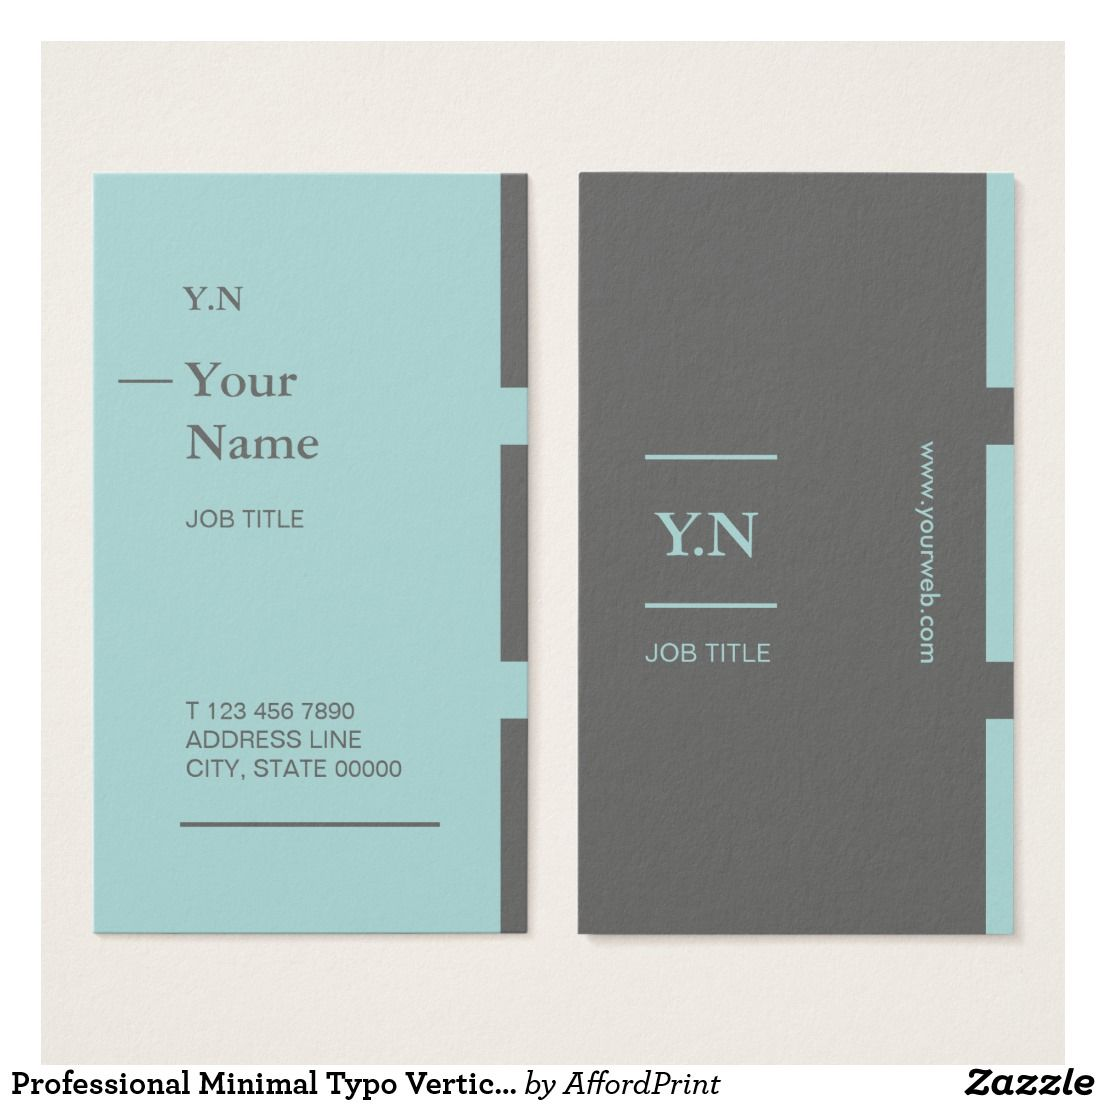 Professional Minimal Typo Vertical Business Card Zazzle Com Vertical Business Cards Personal Planner Business Cards